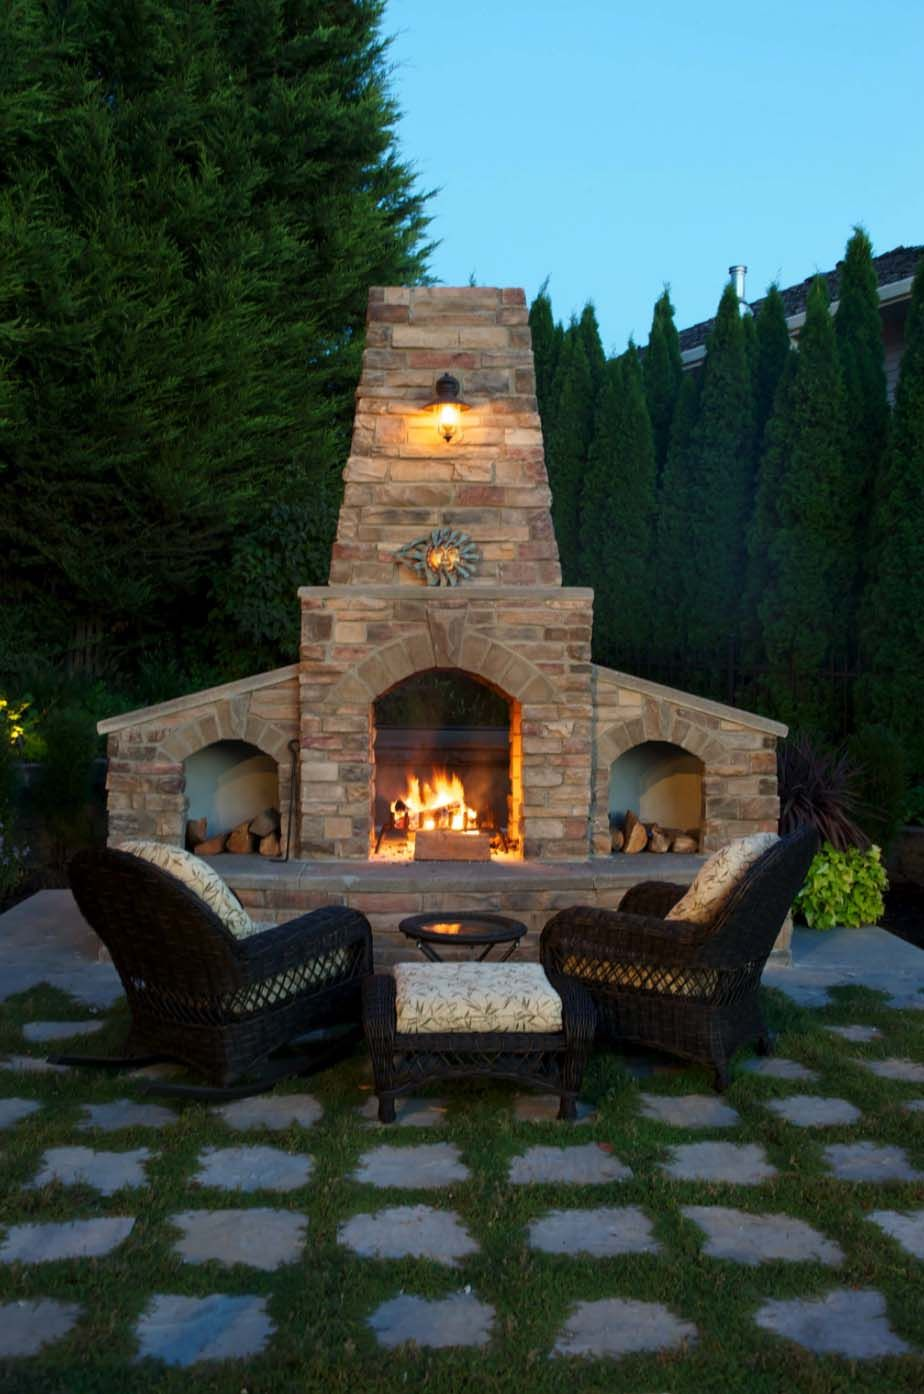 44 Traditional Outdoor Patio Designs To Capture Your Imagination Backyard Fireplace Outdoor Fireplace Outdoor Fireplace Designs